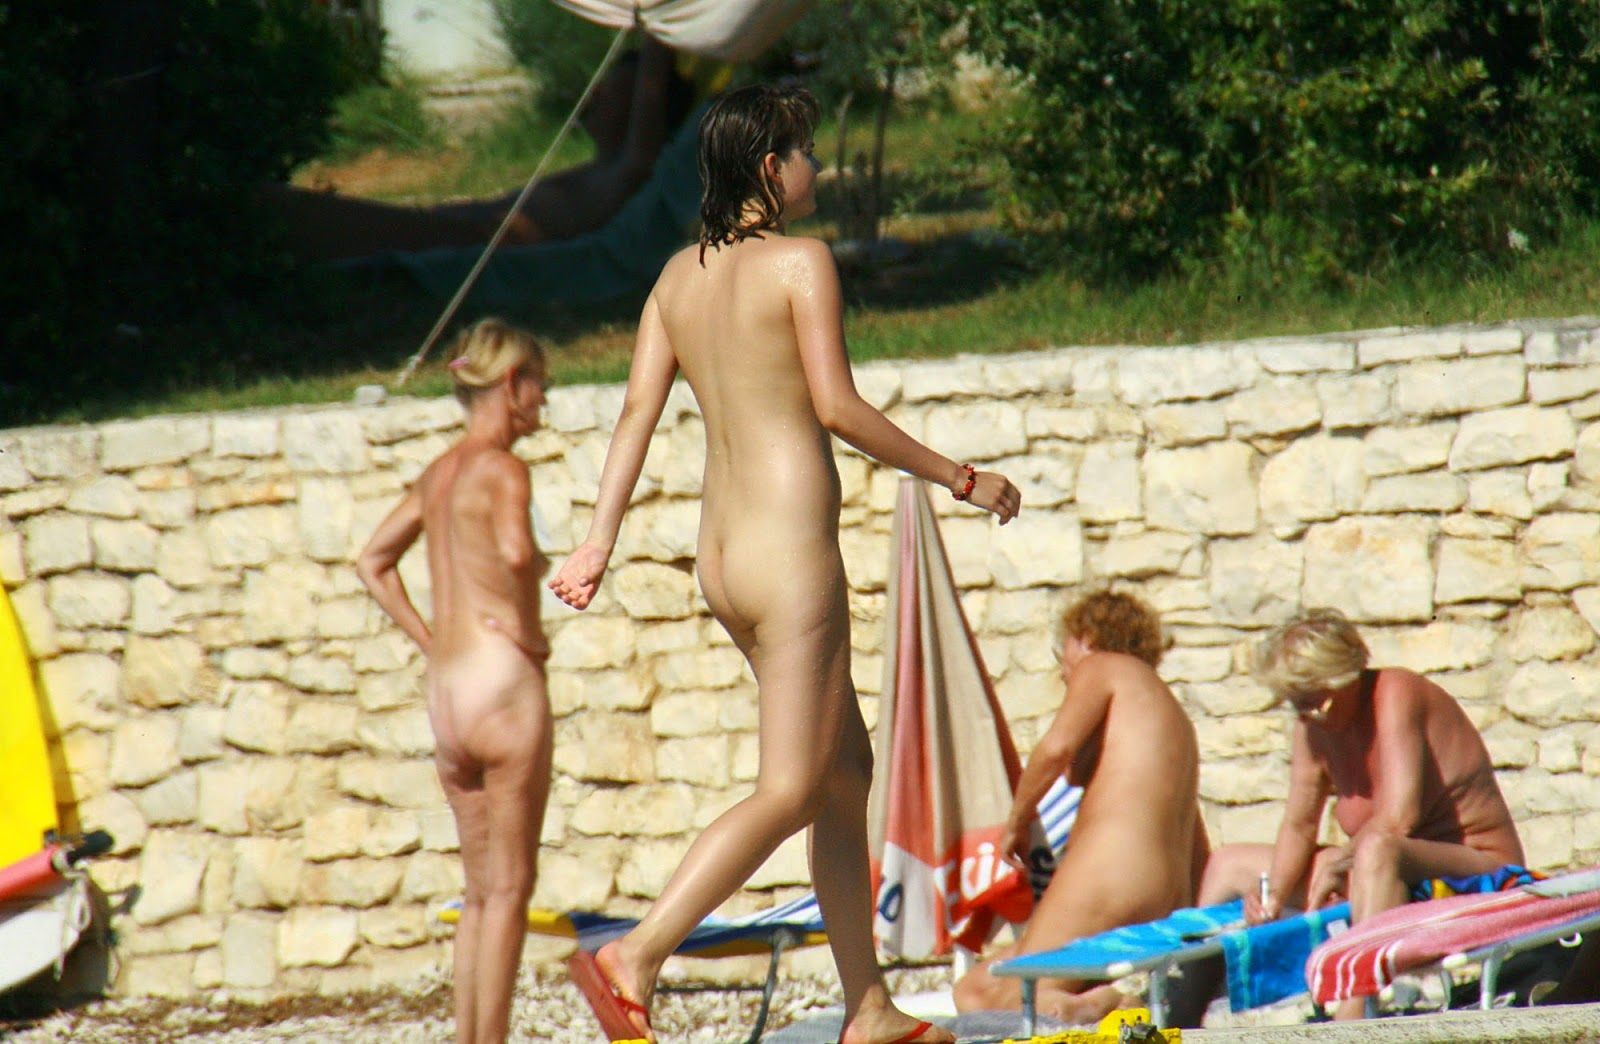 croatian girls nude